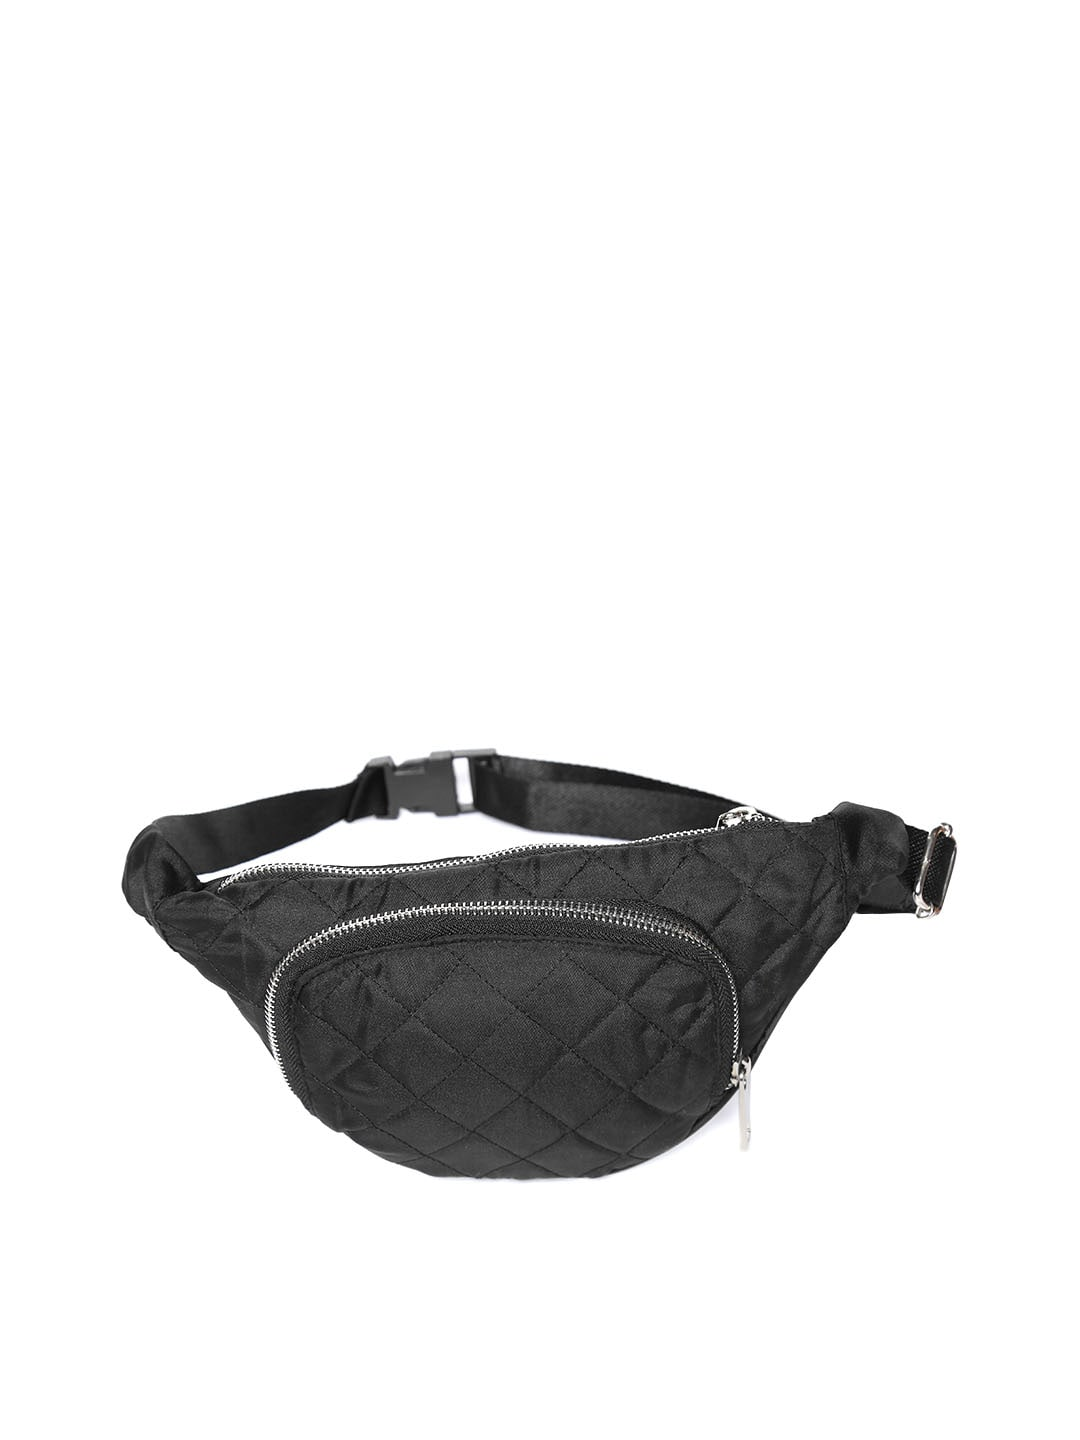 e366974fdcc0 Waist Pouch - Buy Waist Pouch online in India